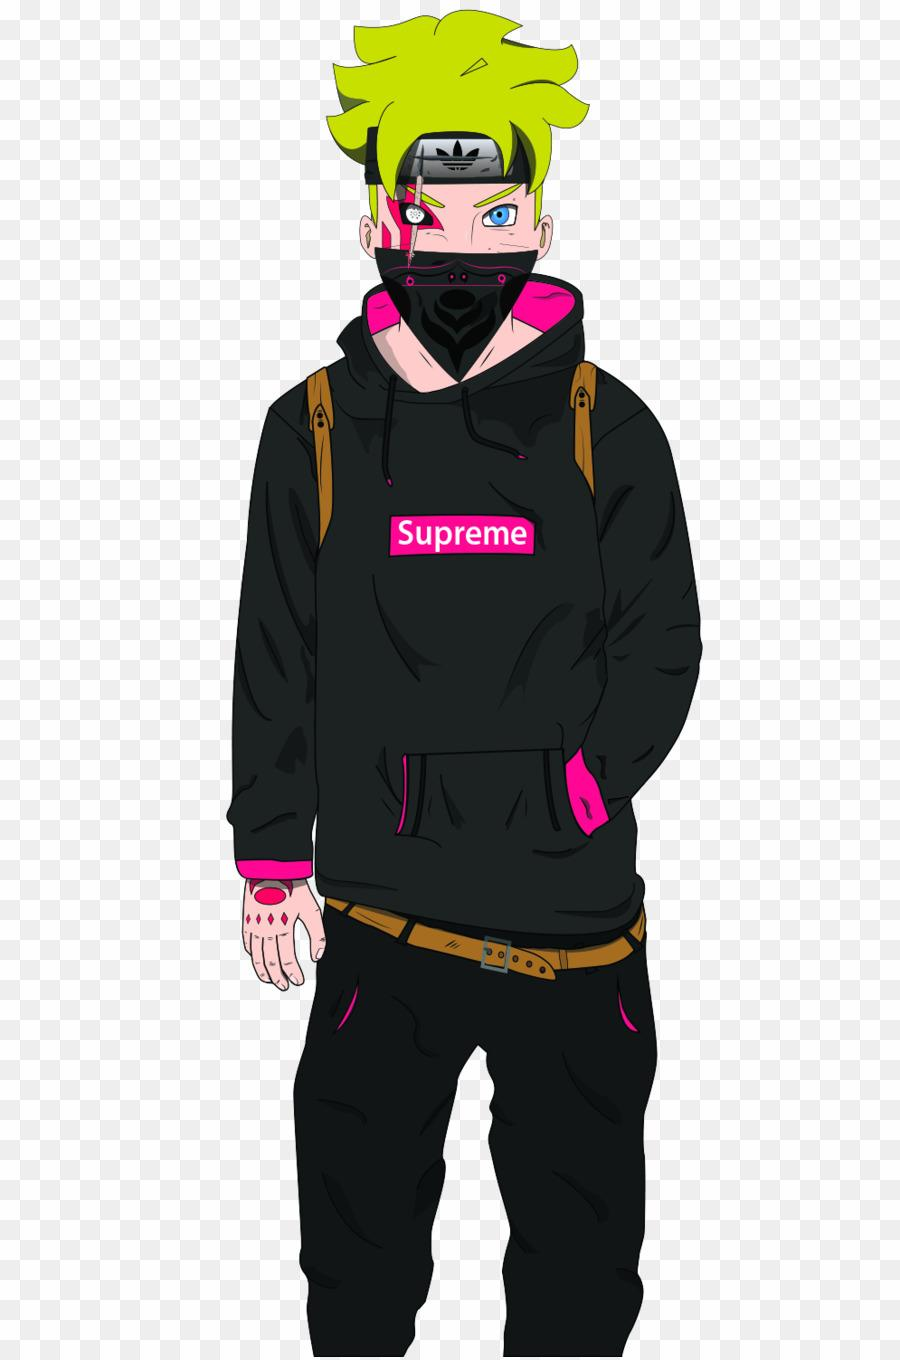 Anime Hypebeast Wallpapers Top Free Anime Hypebeast Backgrounds Wallpaperaccess